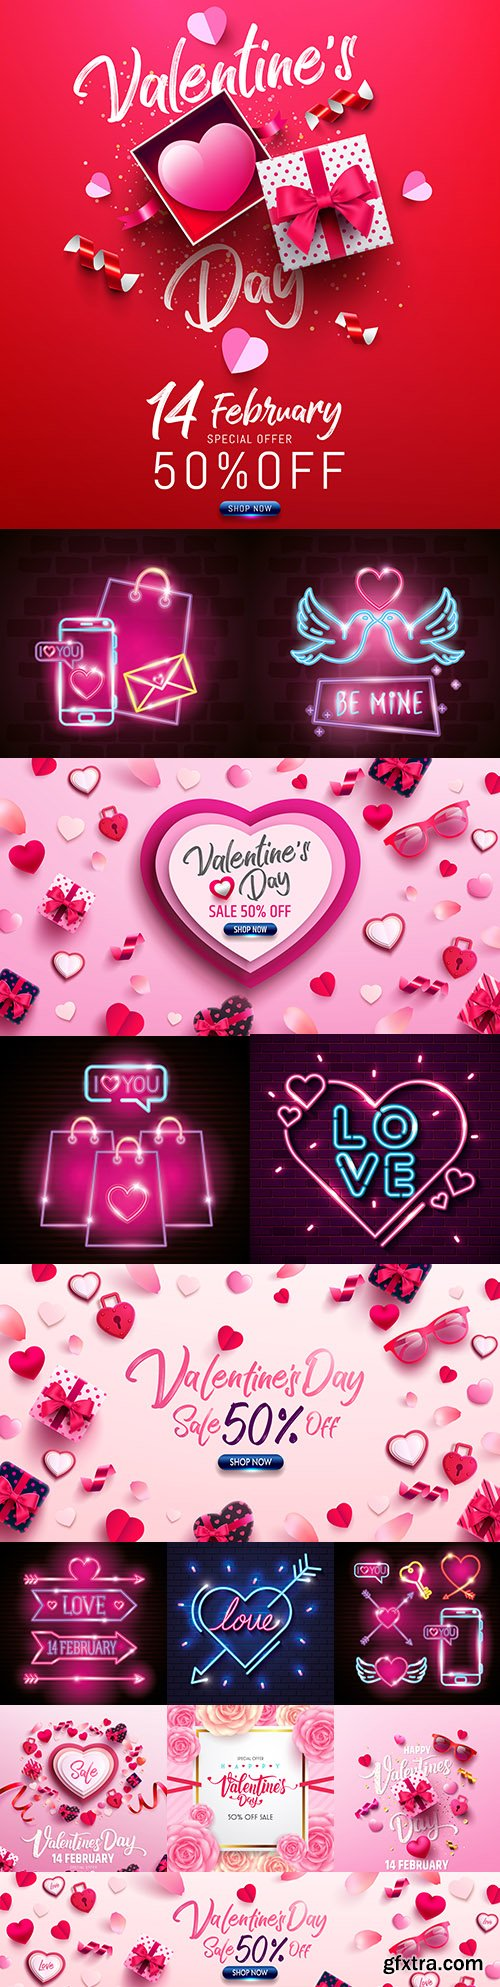 Valentine's Day romantic elements and icons neon lights illustrations